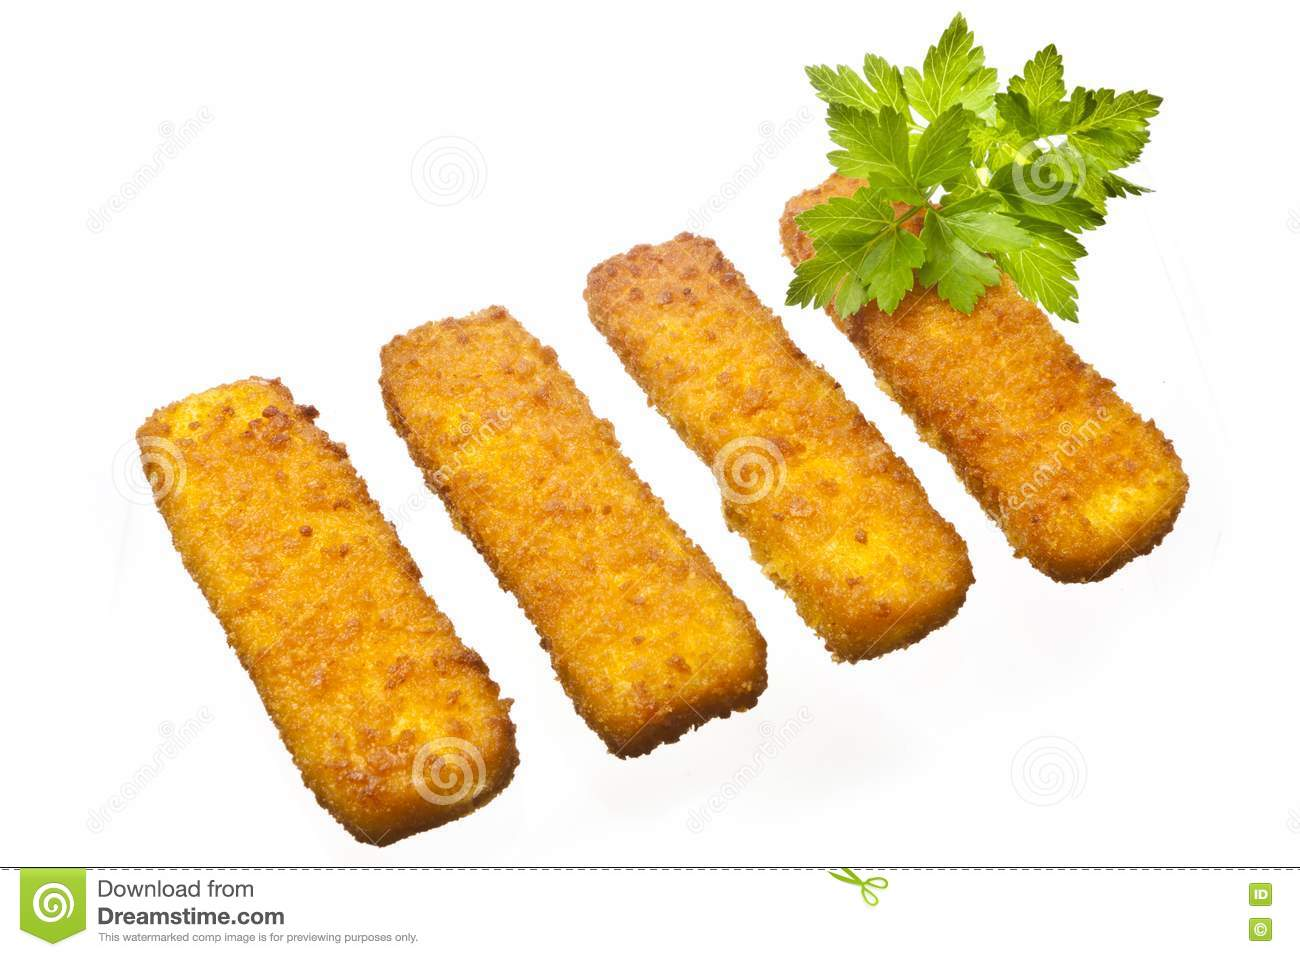 Fish Sticks Royalty Free Stock Photo - Image: 17319235